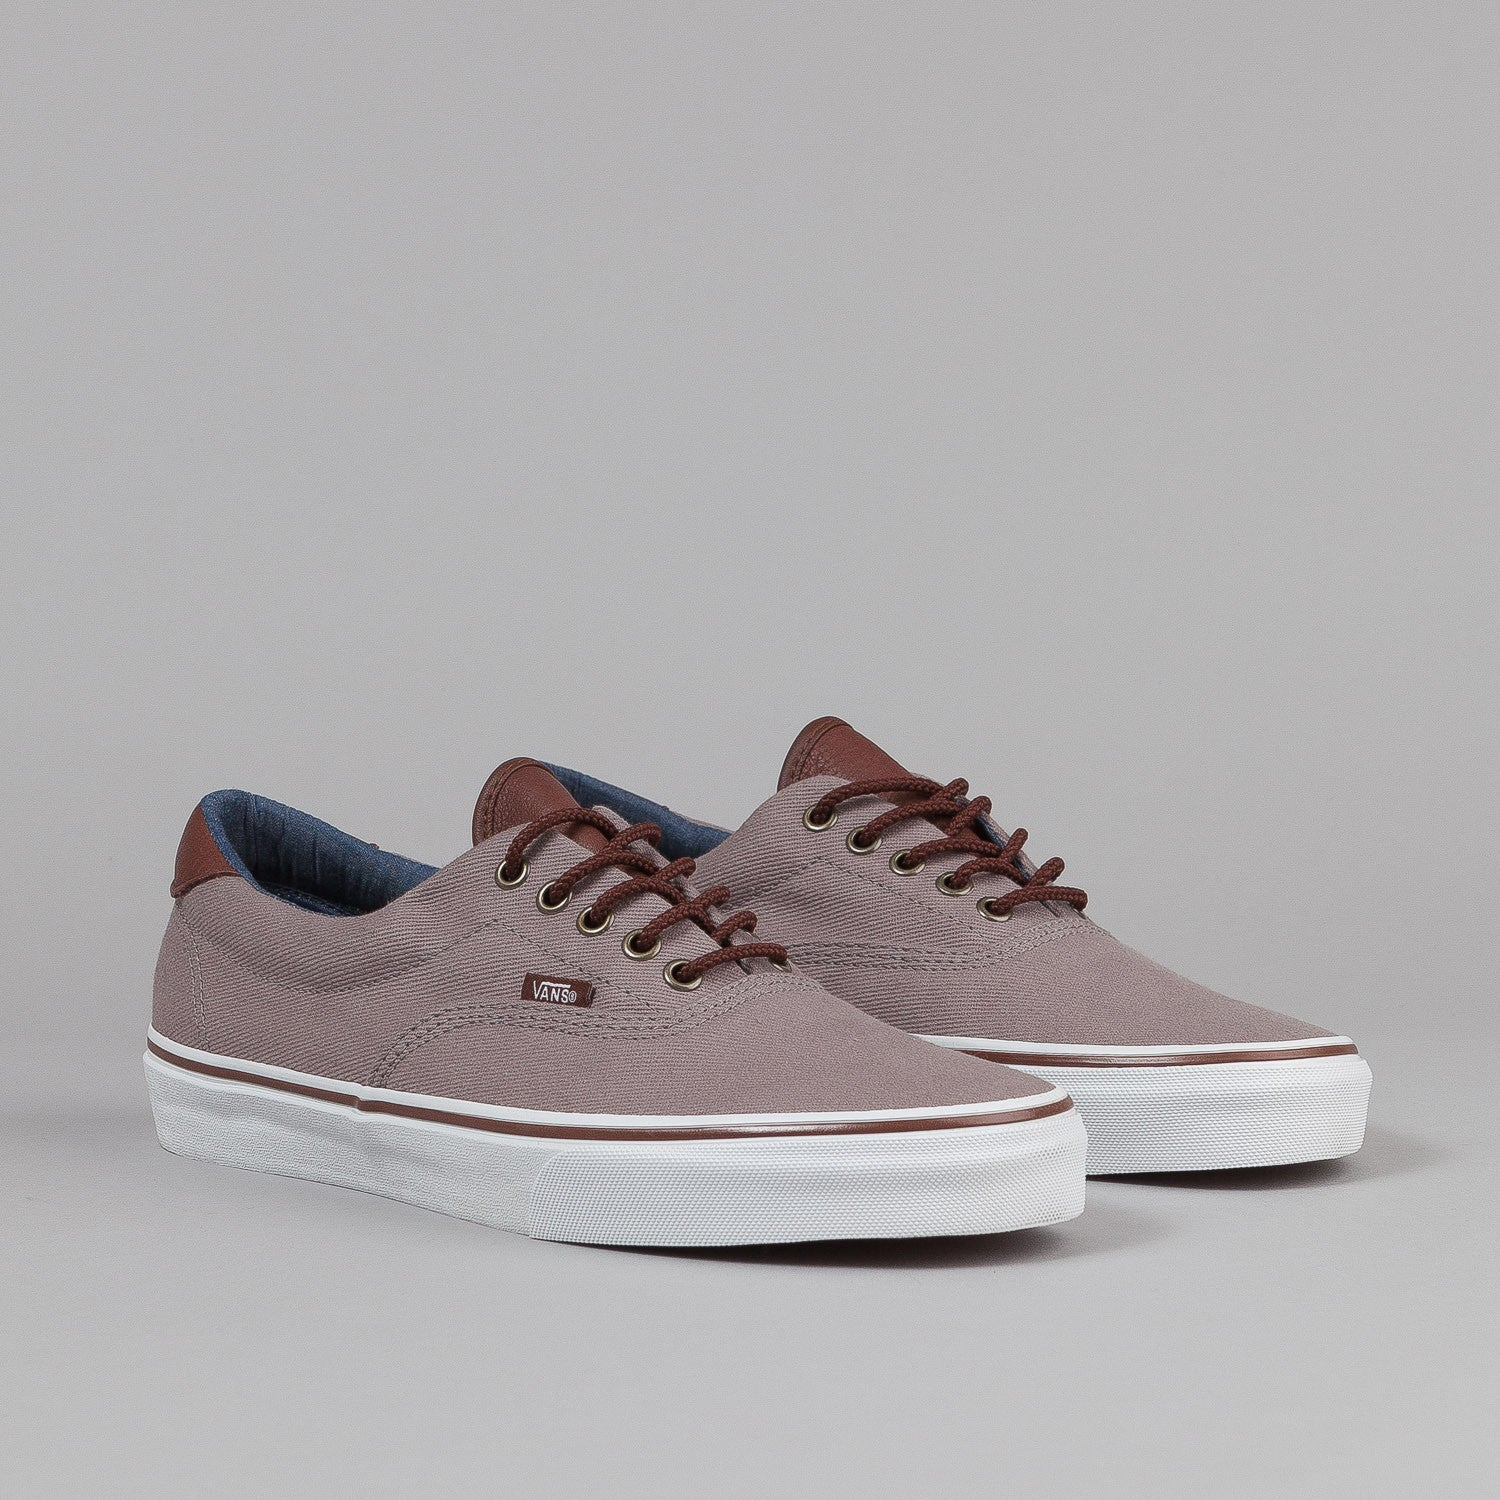 Vans Era Shoes - Cloudburst / Brunette